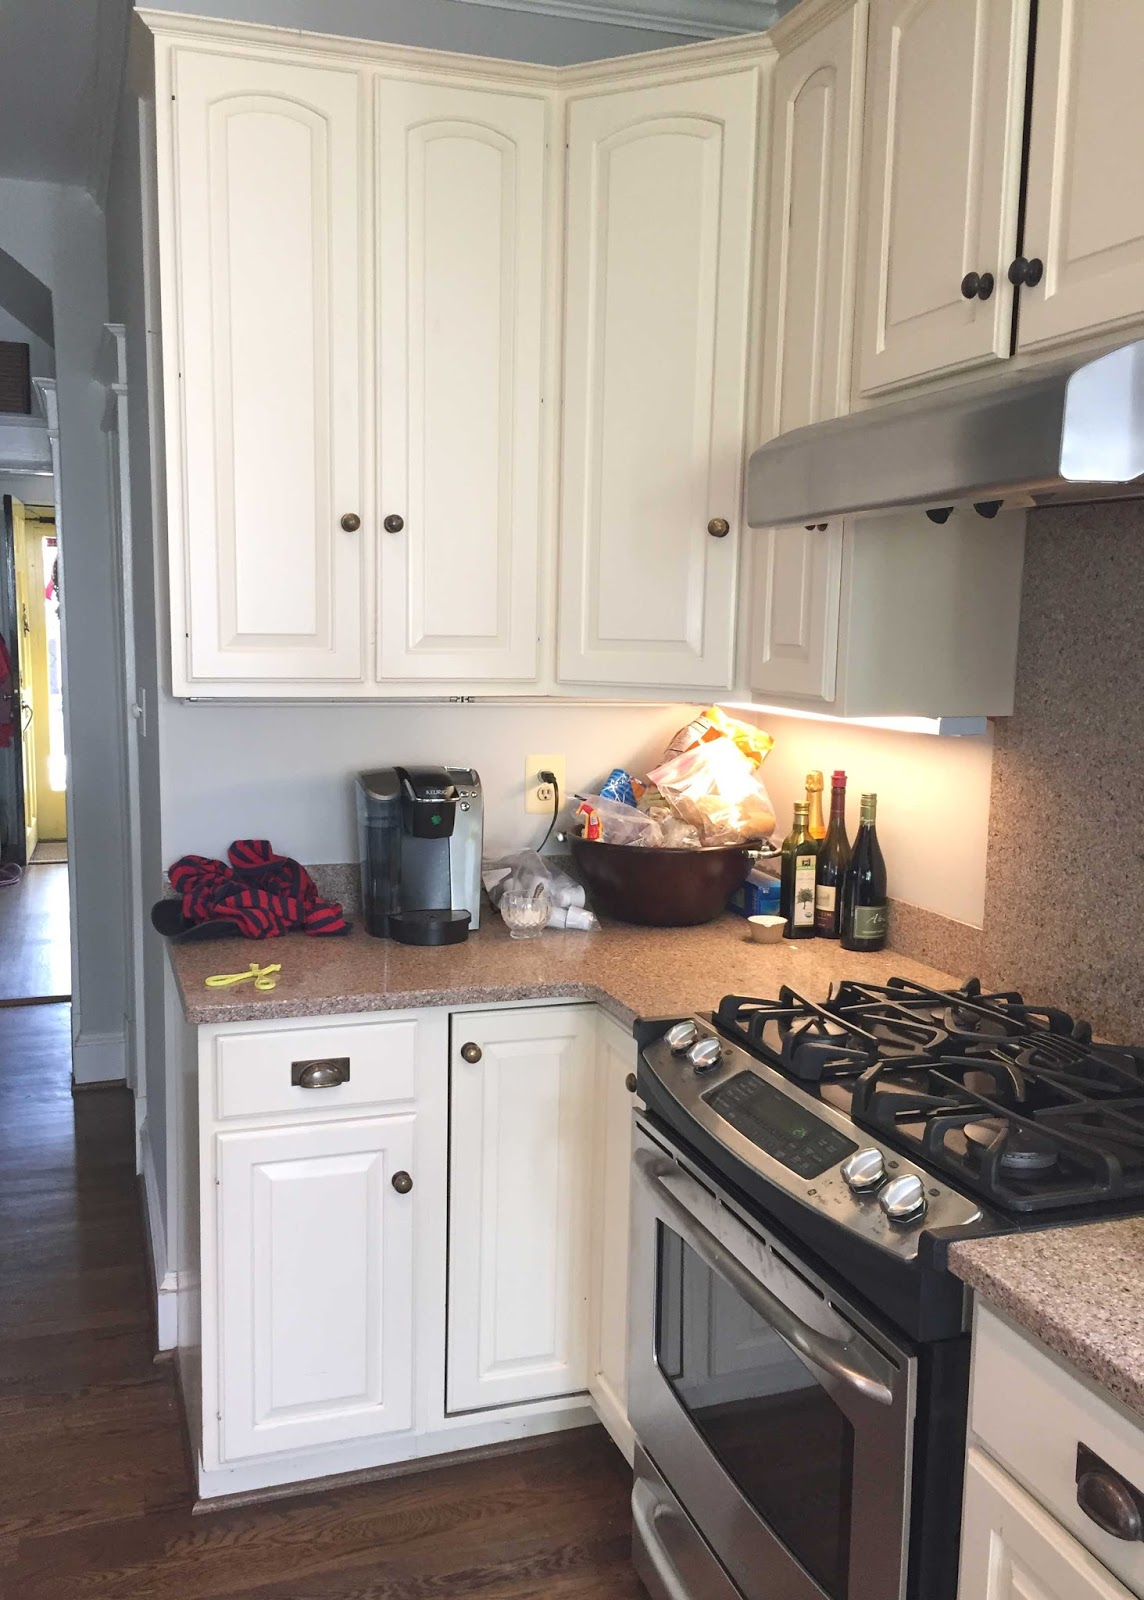 Grey Pinkish Kitchen Countertops